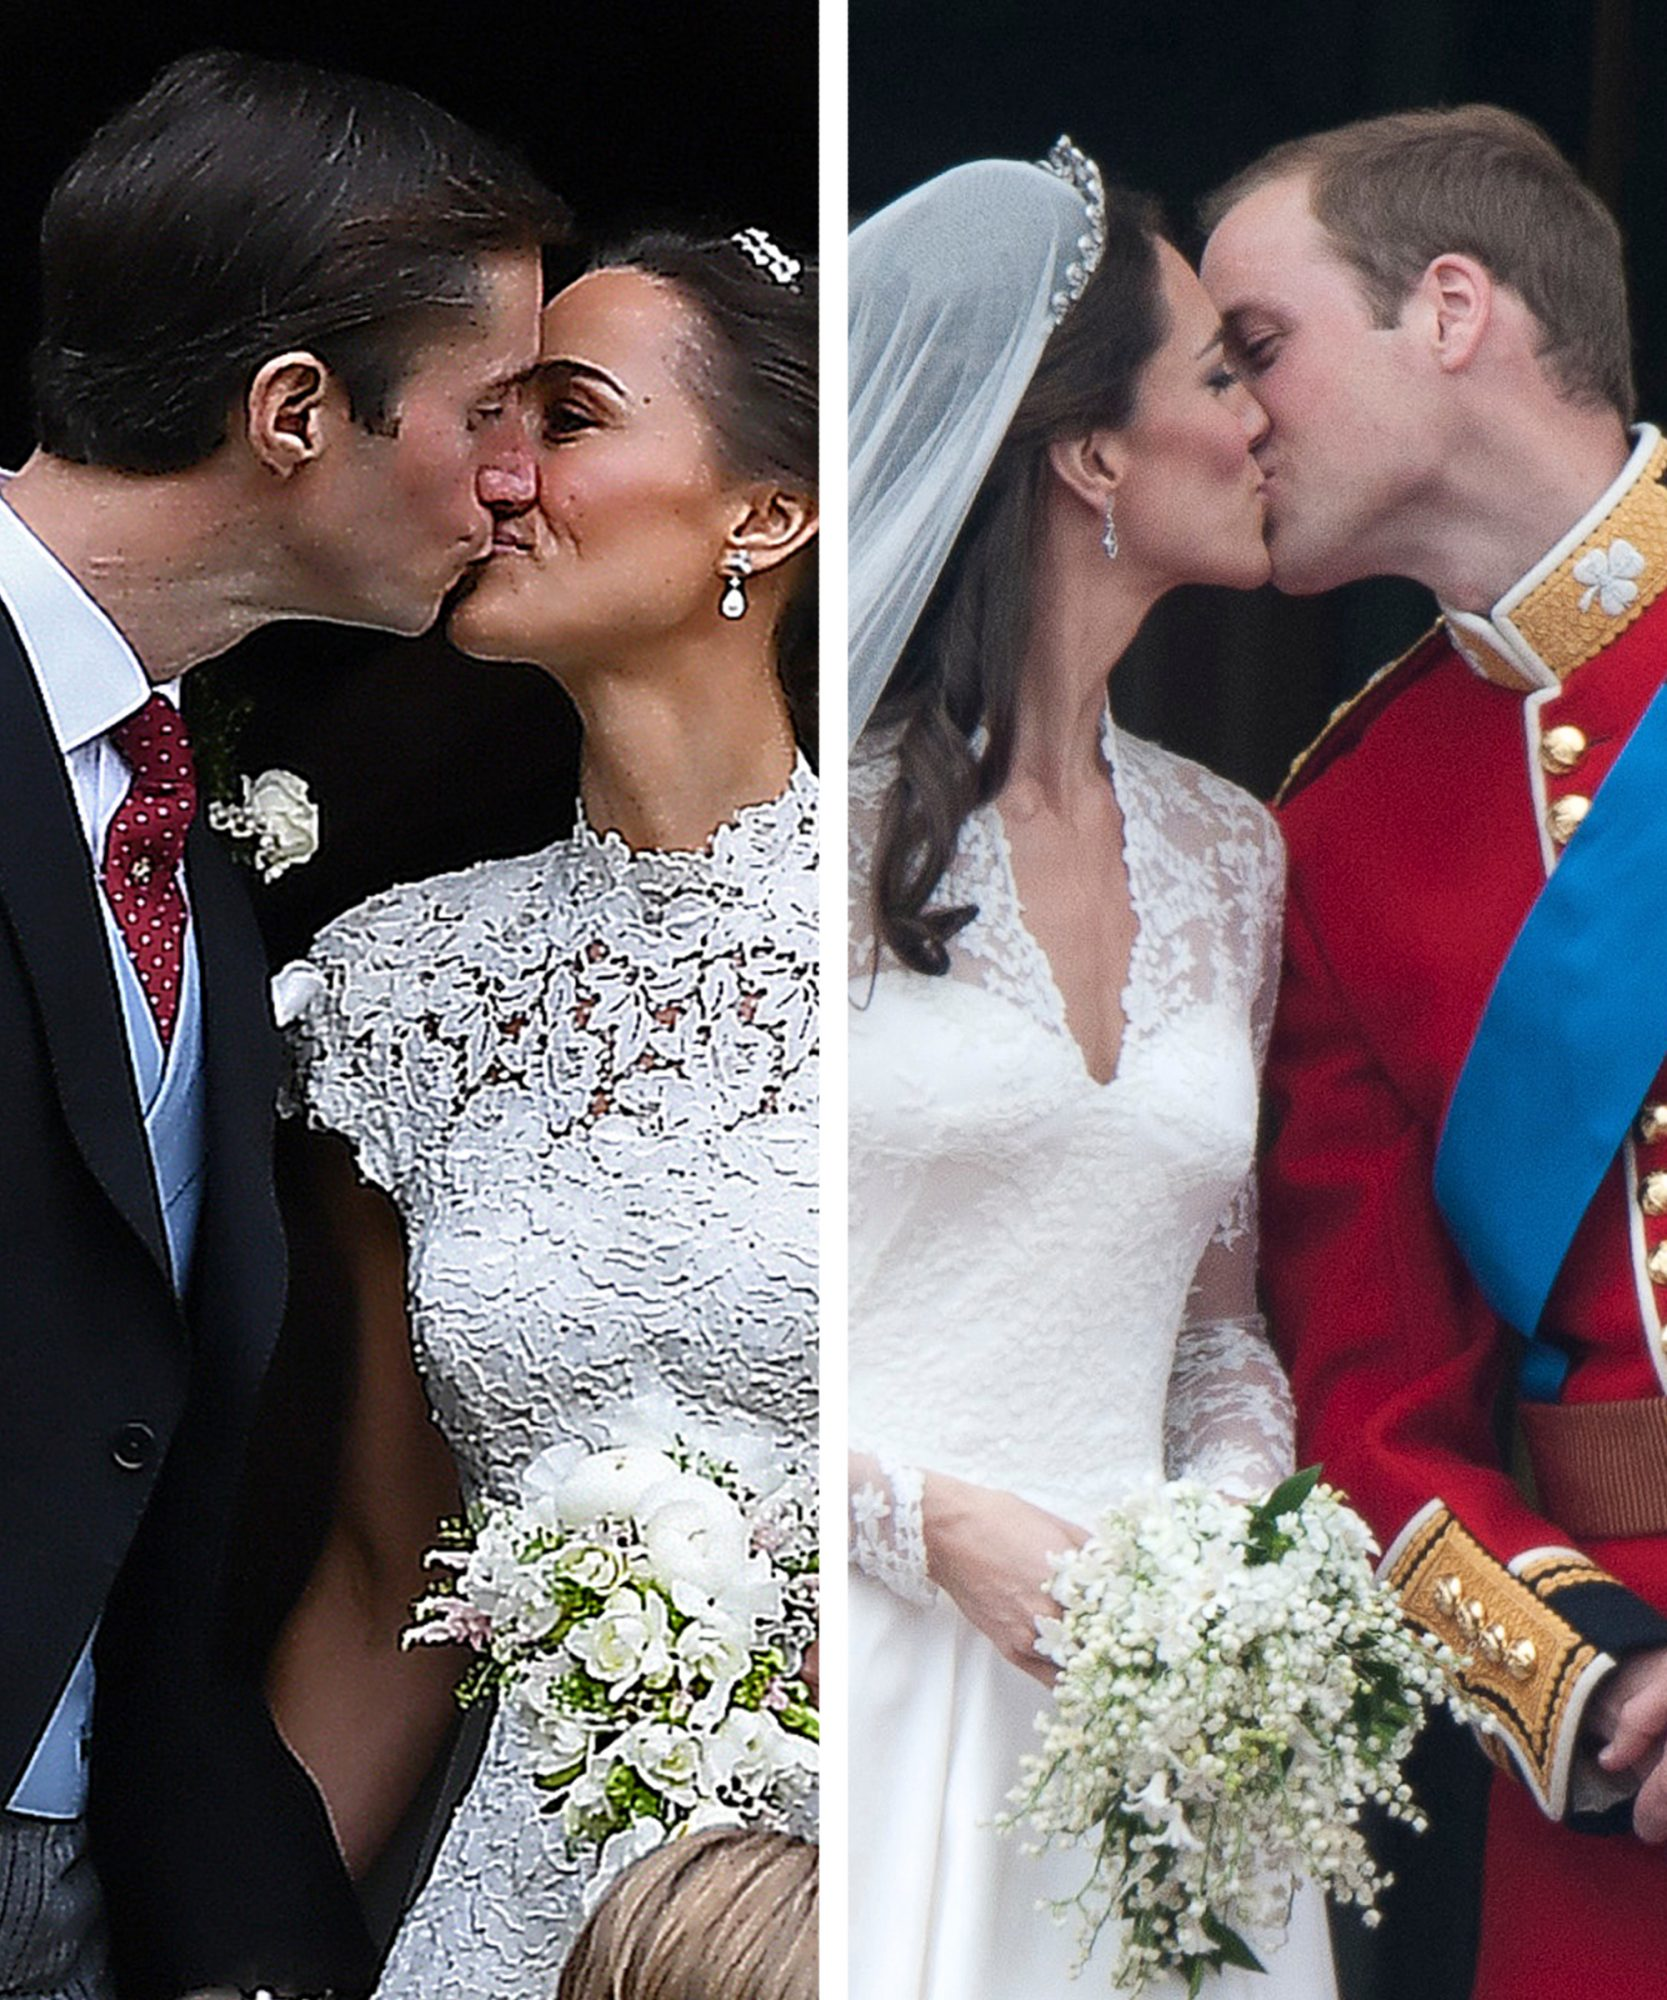 Kate Middleton and Pippa Middleton at their Weddings